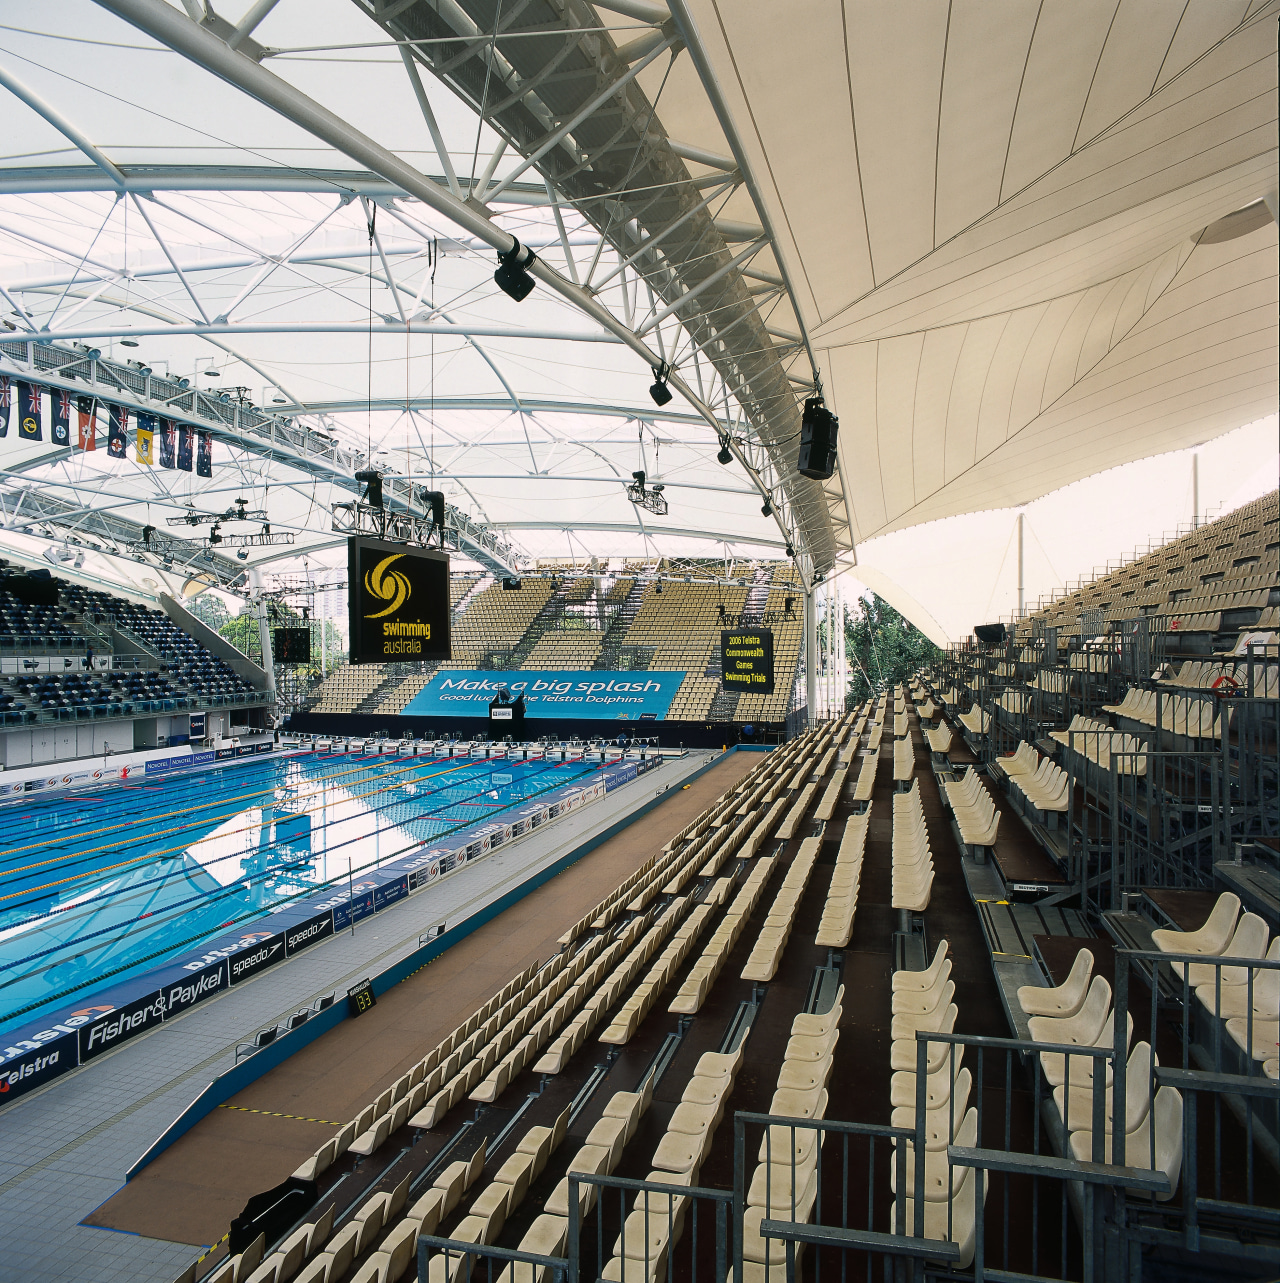 View of competition pool with tiered seating, PTFE arena, roof, sport venue, stadium, structure, white, black